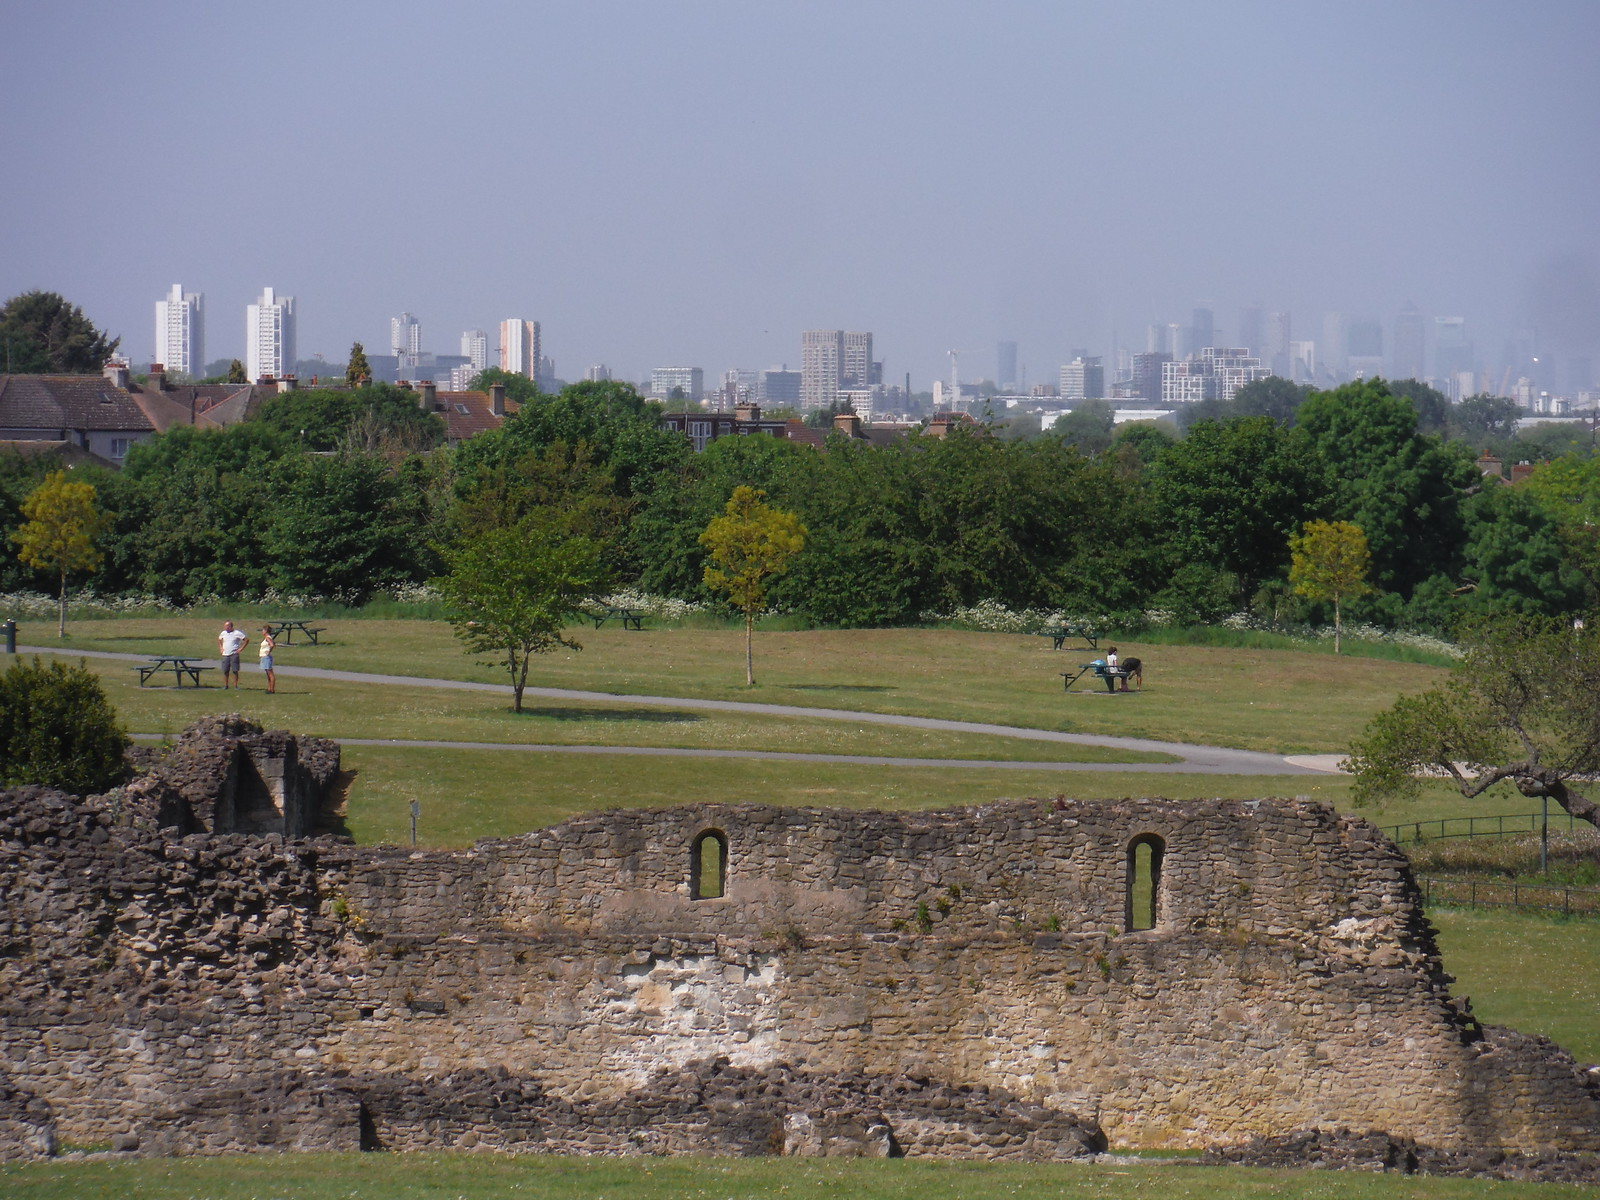 Canary Wharf and City of London beyond the ruins, from Viewpoint SWC Short Walk 43 - Lesnes Abbey Woods with Bostall Woods (Abbey Wood Circular)